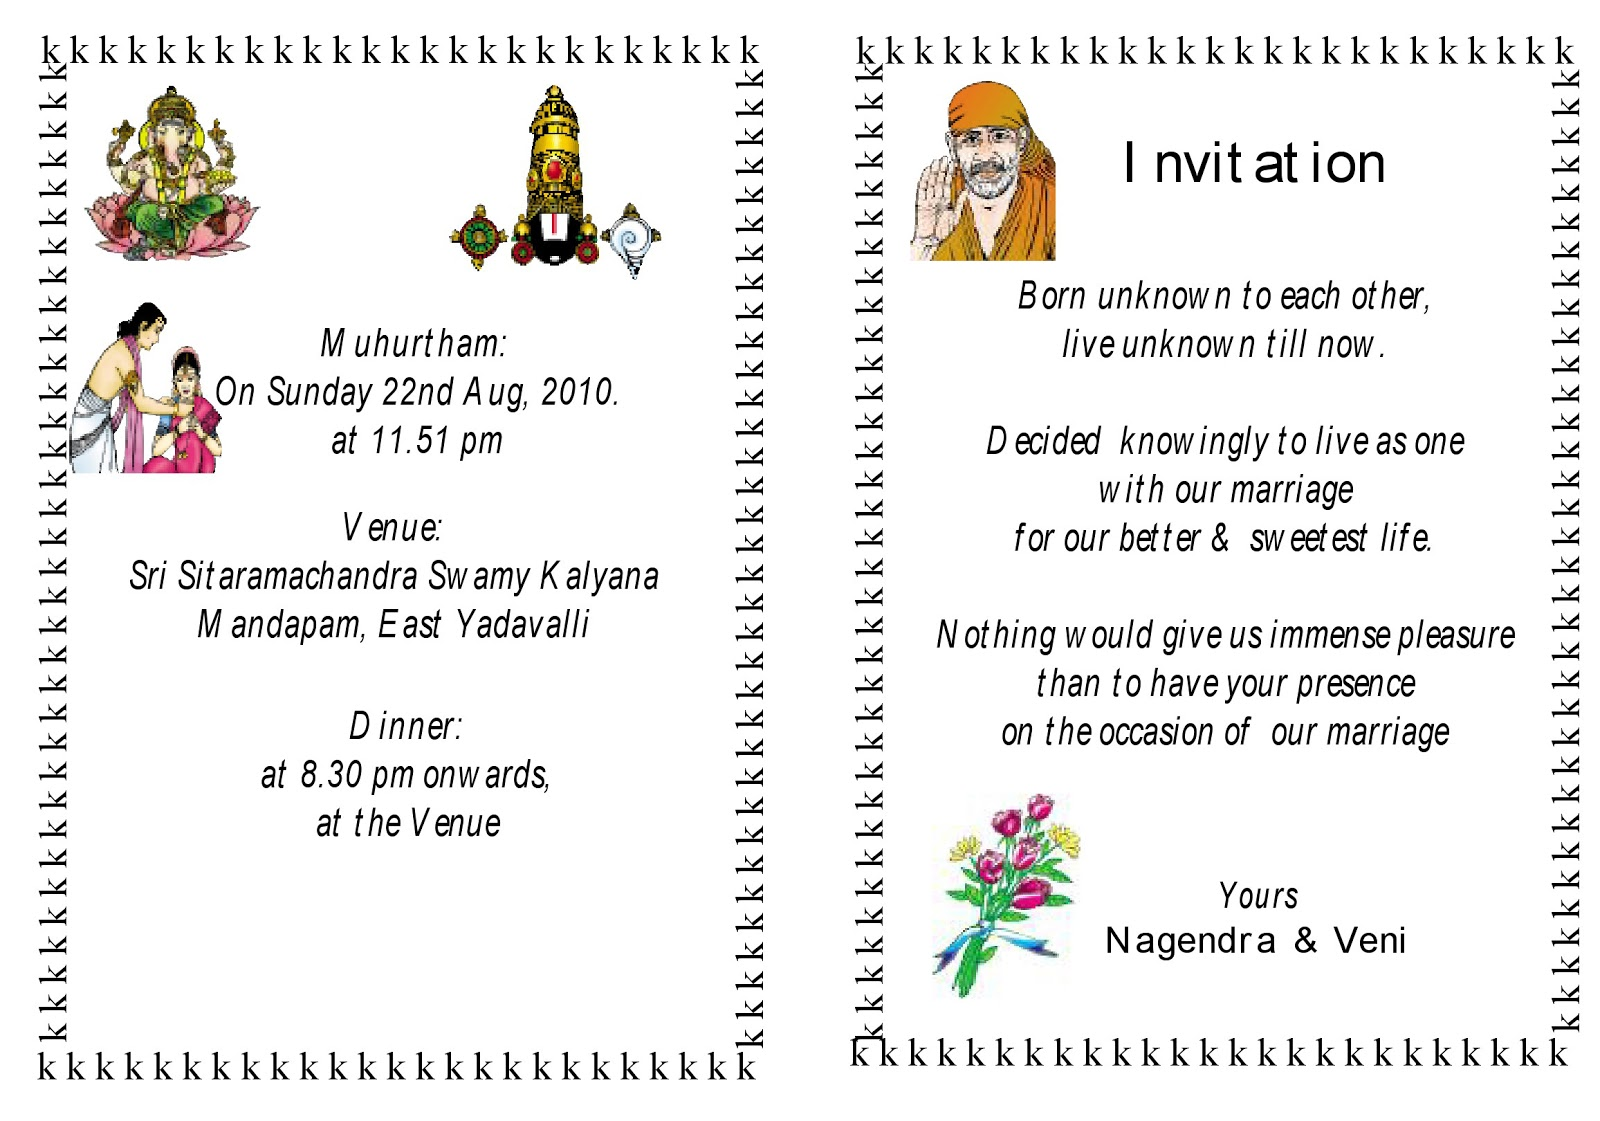 Wedding Invitation Quotes For Friends In English: English Funny Marriage Quotes. QuotesGram